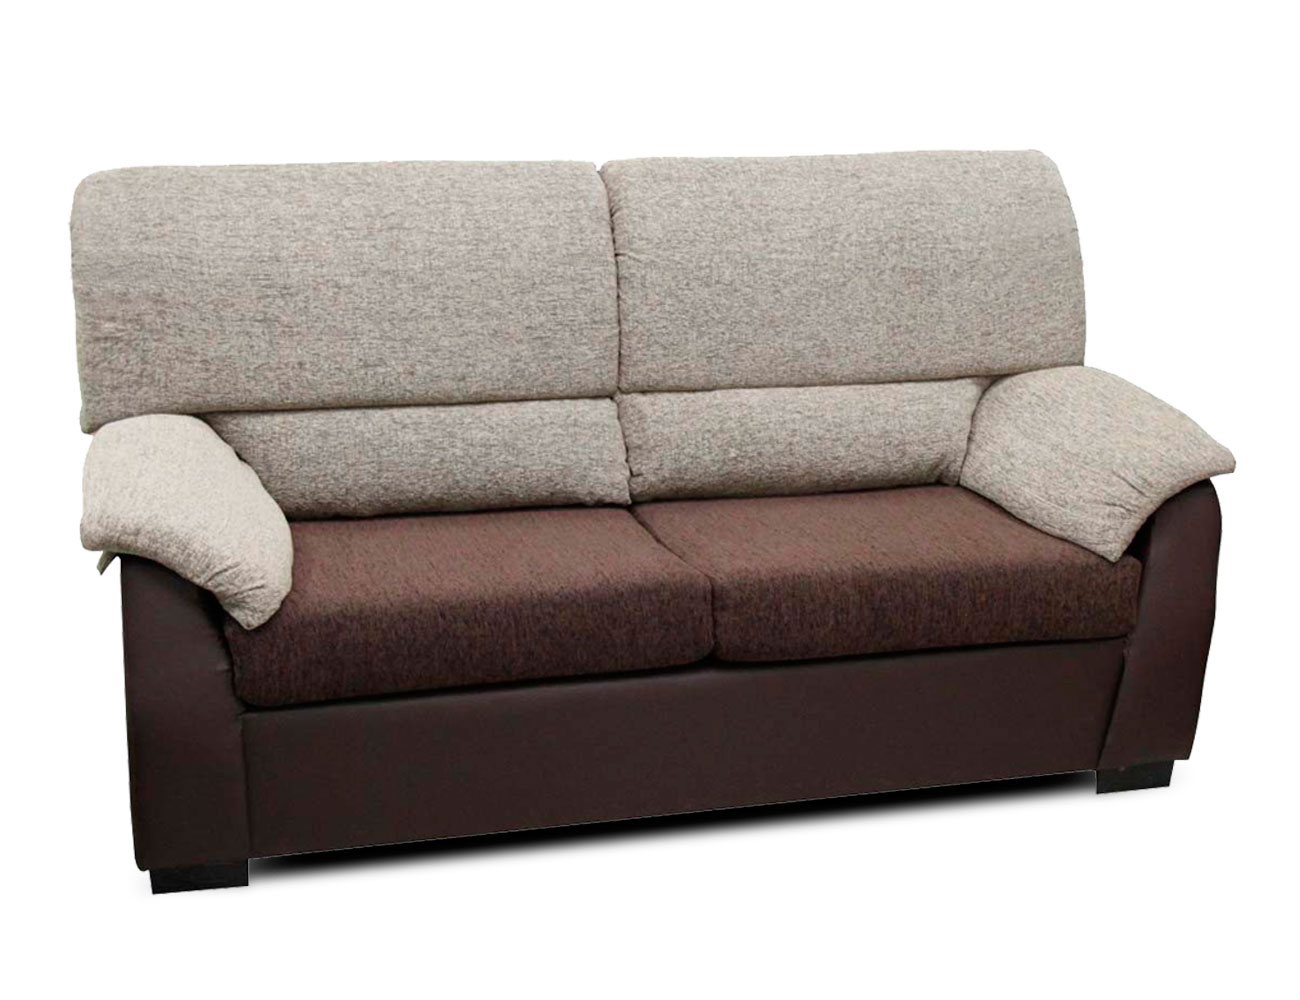 Sof de 3 plazas barato 15245 factory del mueble utrera for Sofa 2 plazas barato